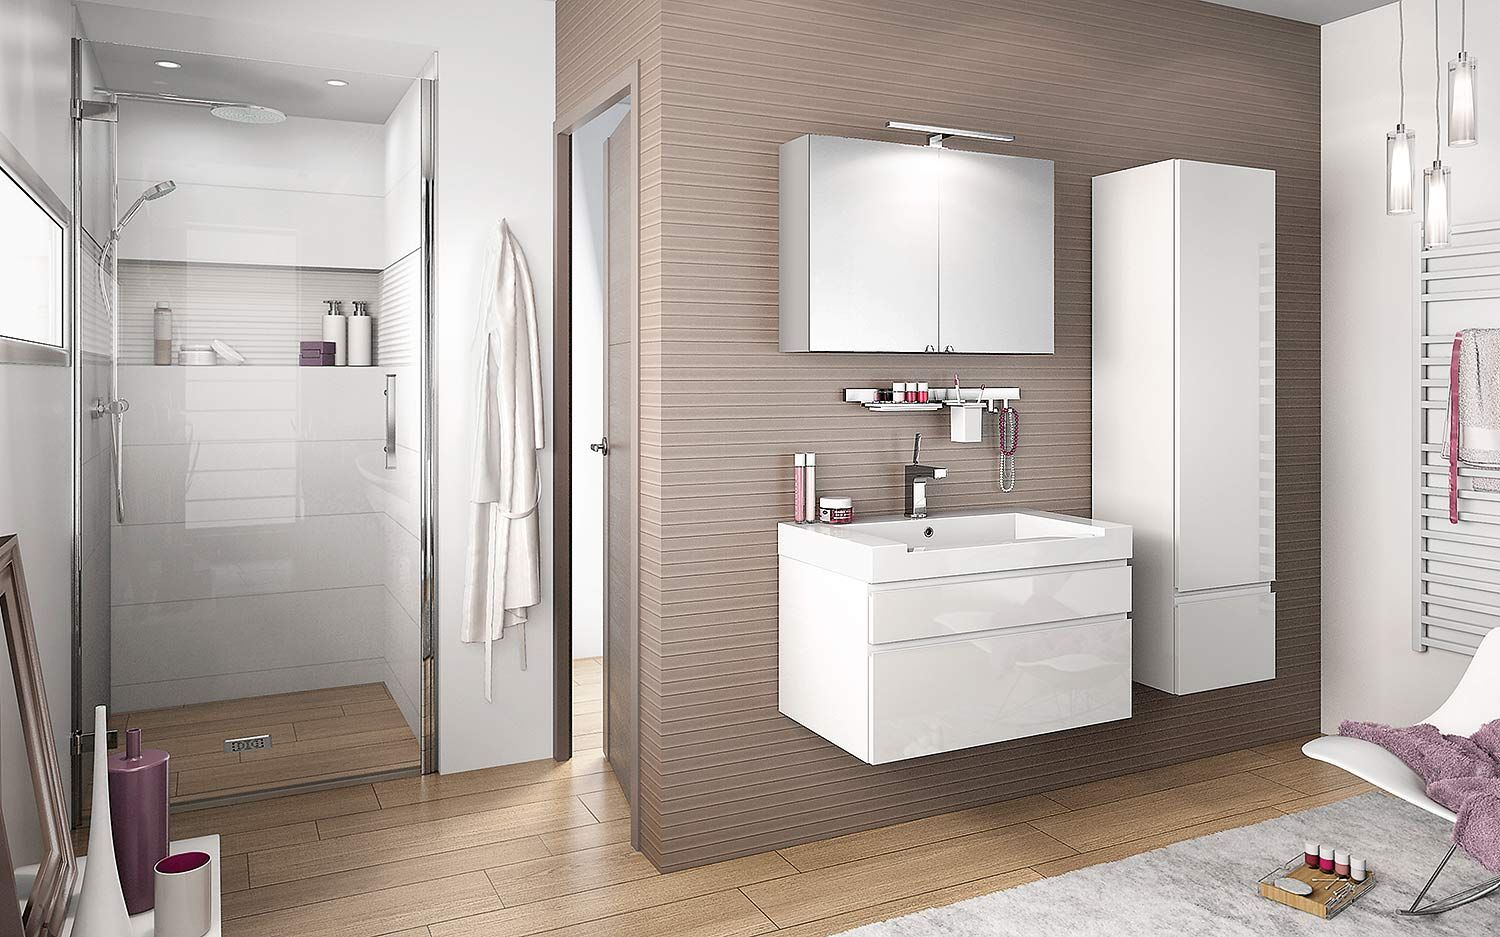 2014 Meubles Salle De Bains Delpha Inspirations Nt80d 1 Jpg 1500 937 Double Sink Bathroom Bathroom Furniture Bathroom